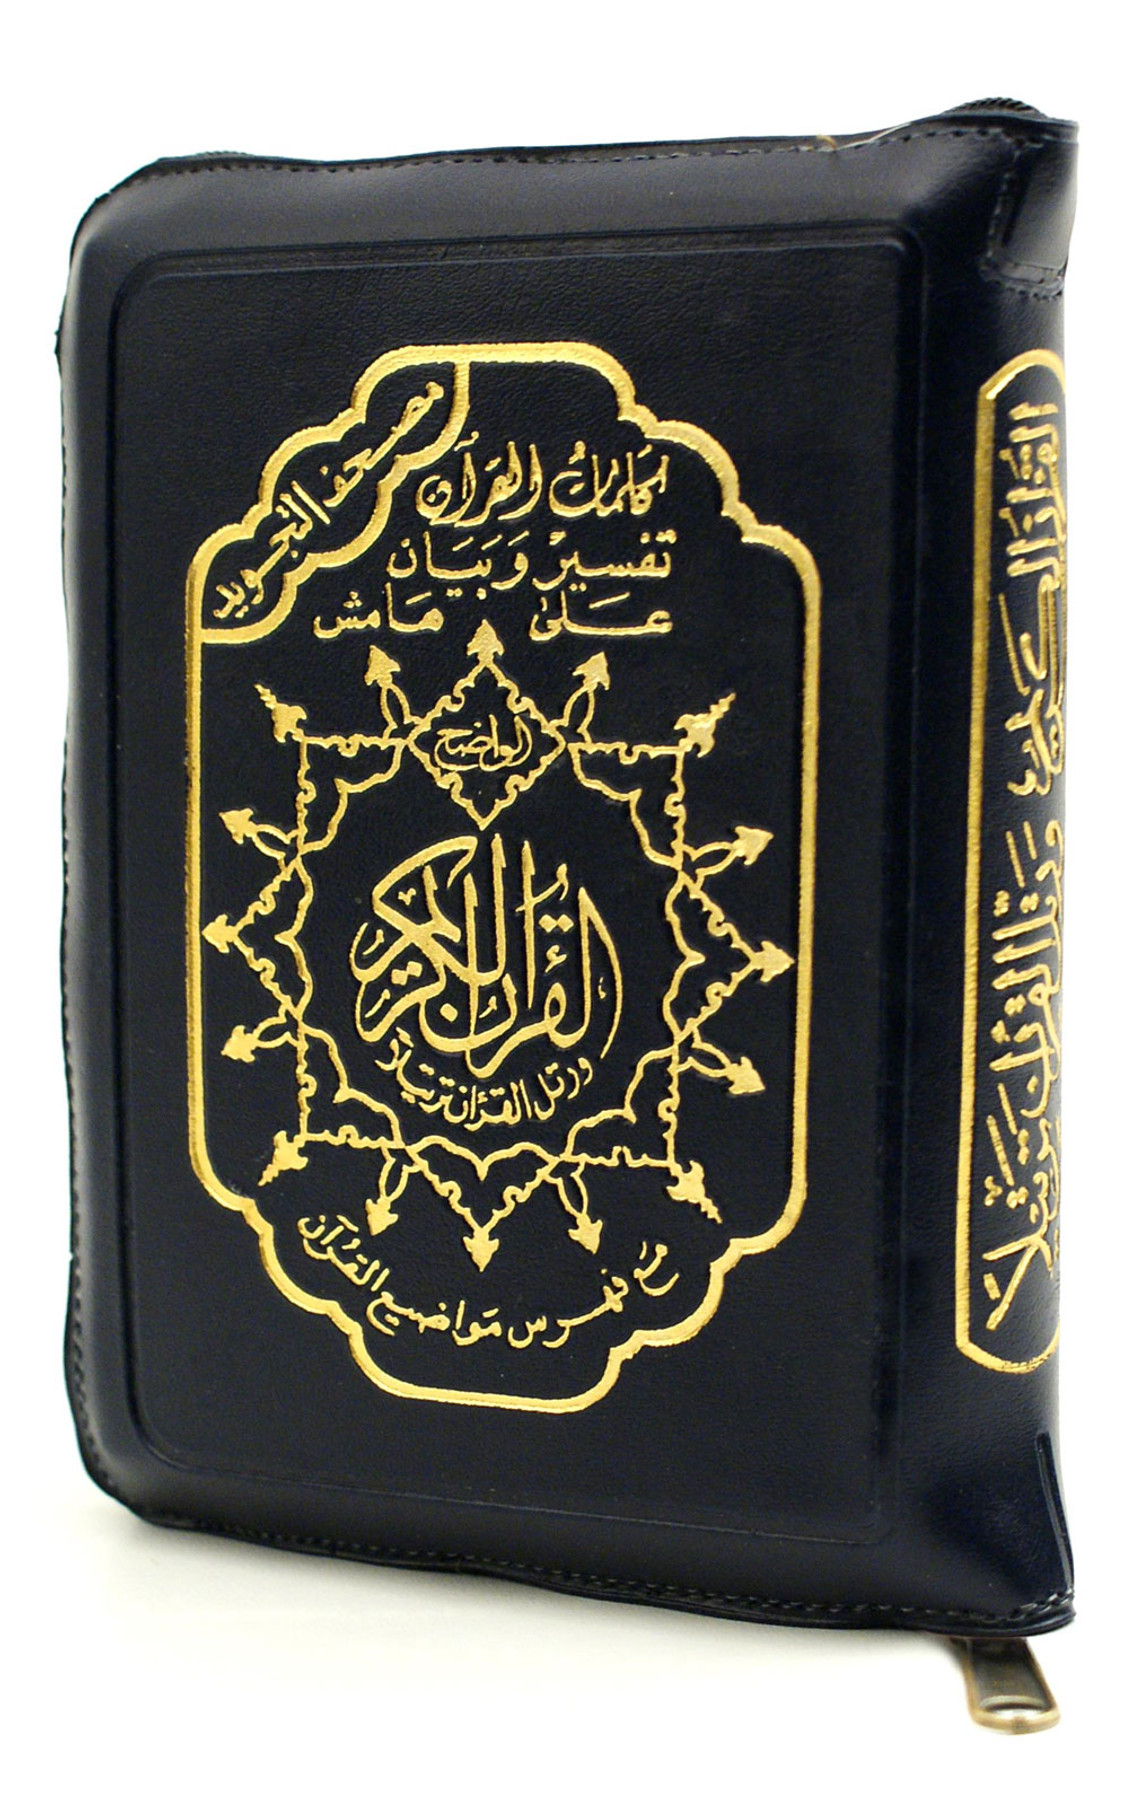 Tajweed Quran (Whole Quran, With Zipper, Medium size) (Arabic Edition) 8.5 x 5.8 x 1.2 inch,9789933423438,